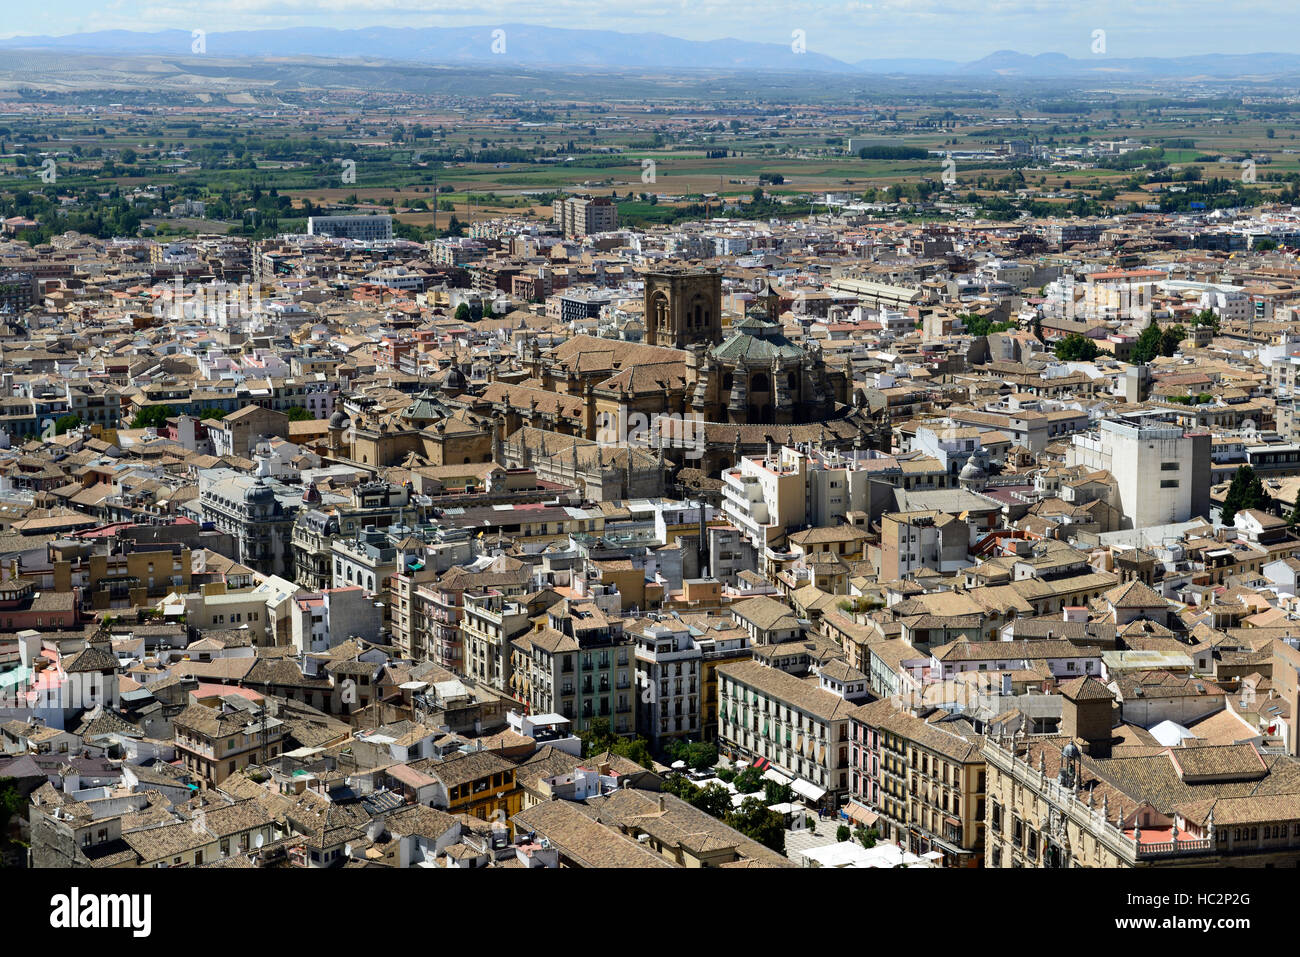 Cordoba City aerial view viewpoint overview taken from Alhambra palaces and gardens Granada Andalusia Spain RM World - Stock Image